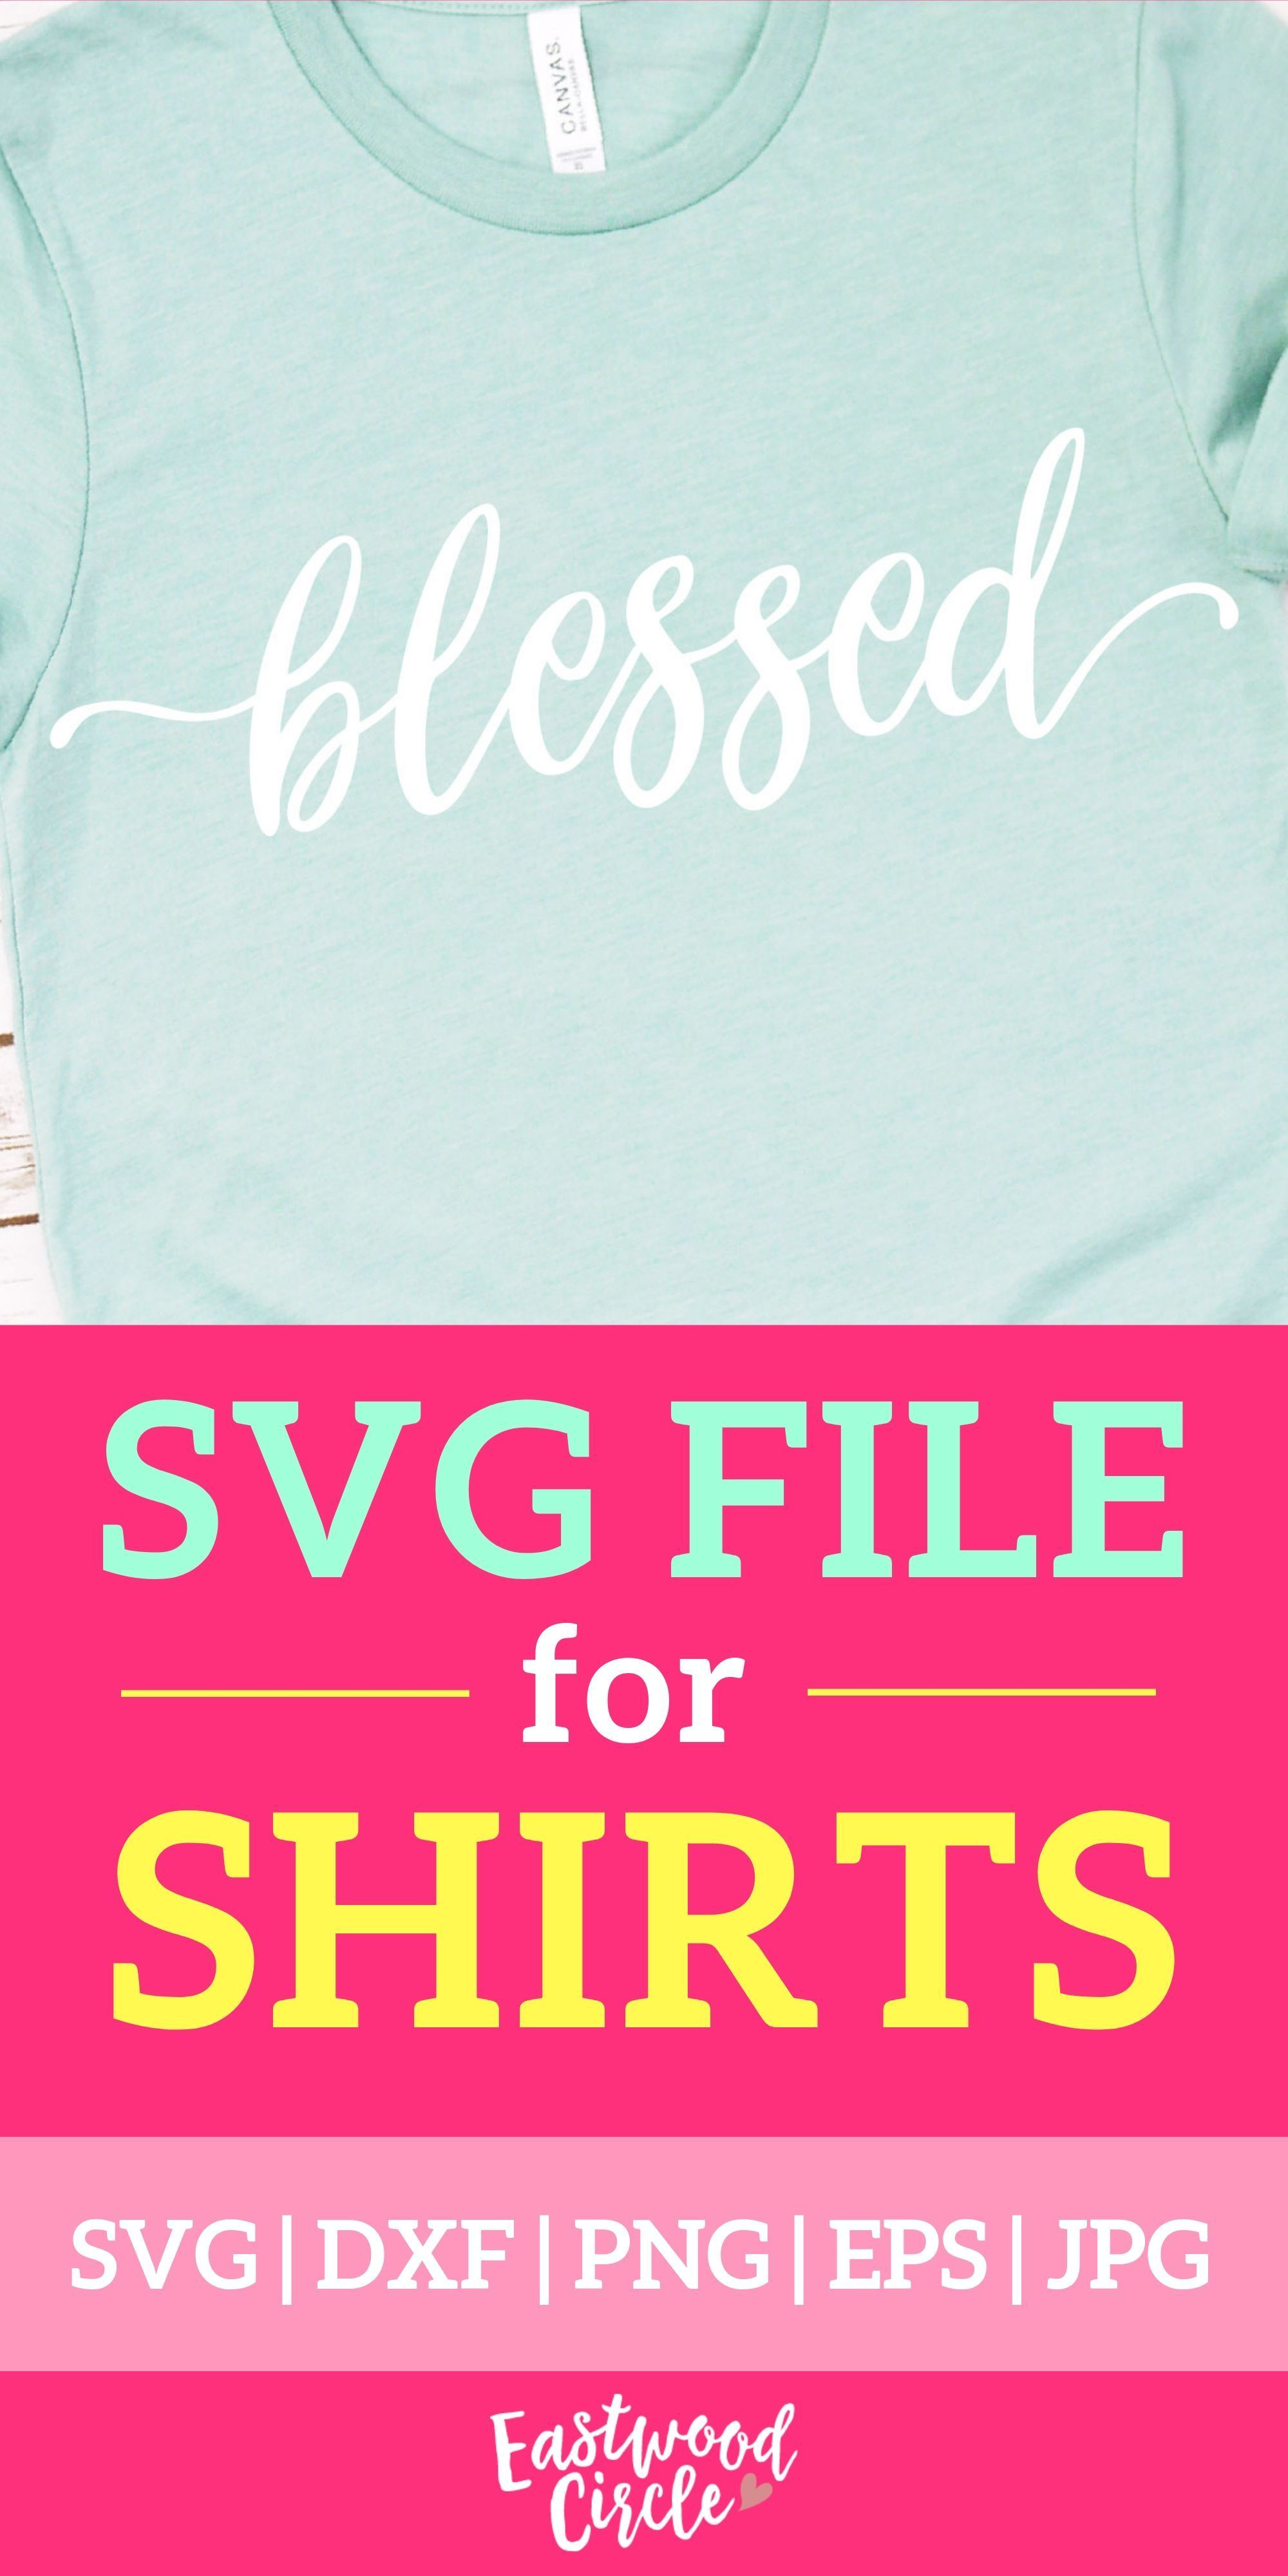 Blessed Svg Fall Svg File Fall Svg Thanksgiving Svg Etsy In 2020 Svg Inspirational Tshirts Svg Files For Cricut